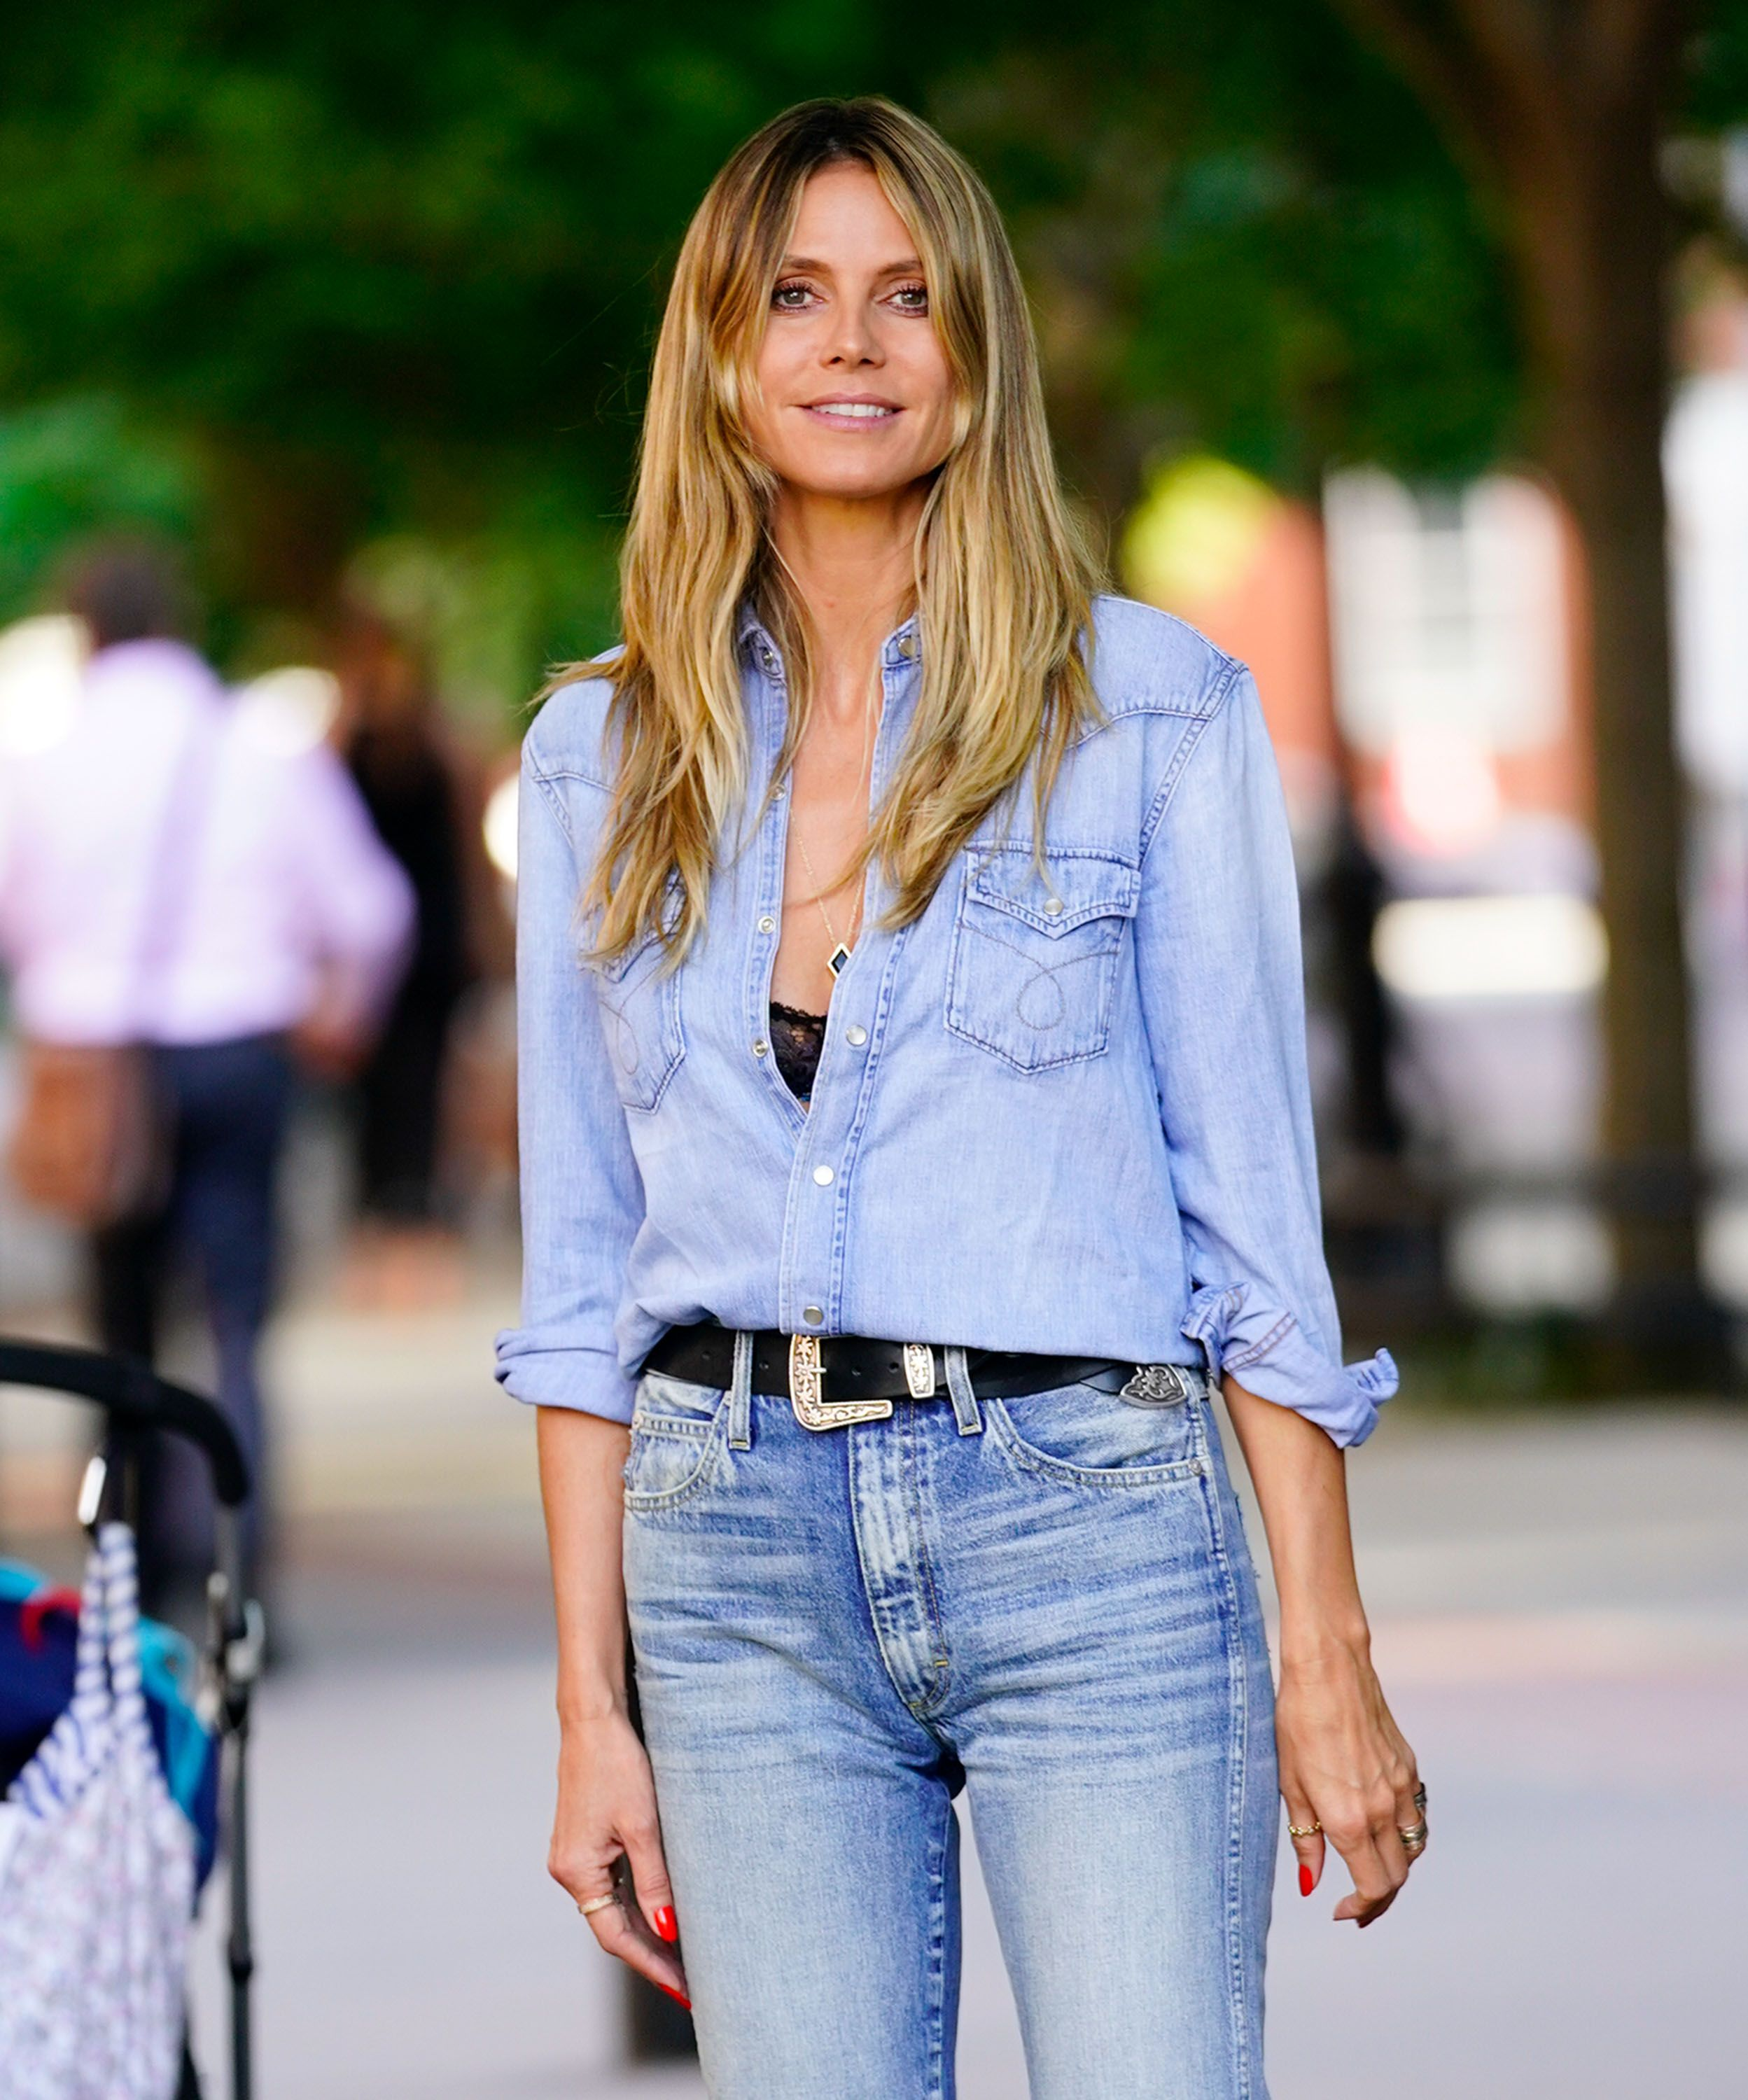 Heidi Klum On Her Greatest Beauty Discoveries And Using Baby Shampoo As A Cleanser (Yes, Really)